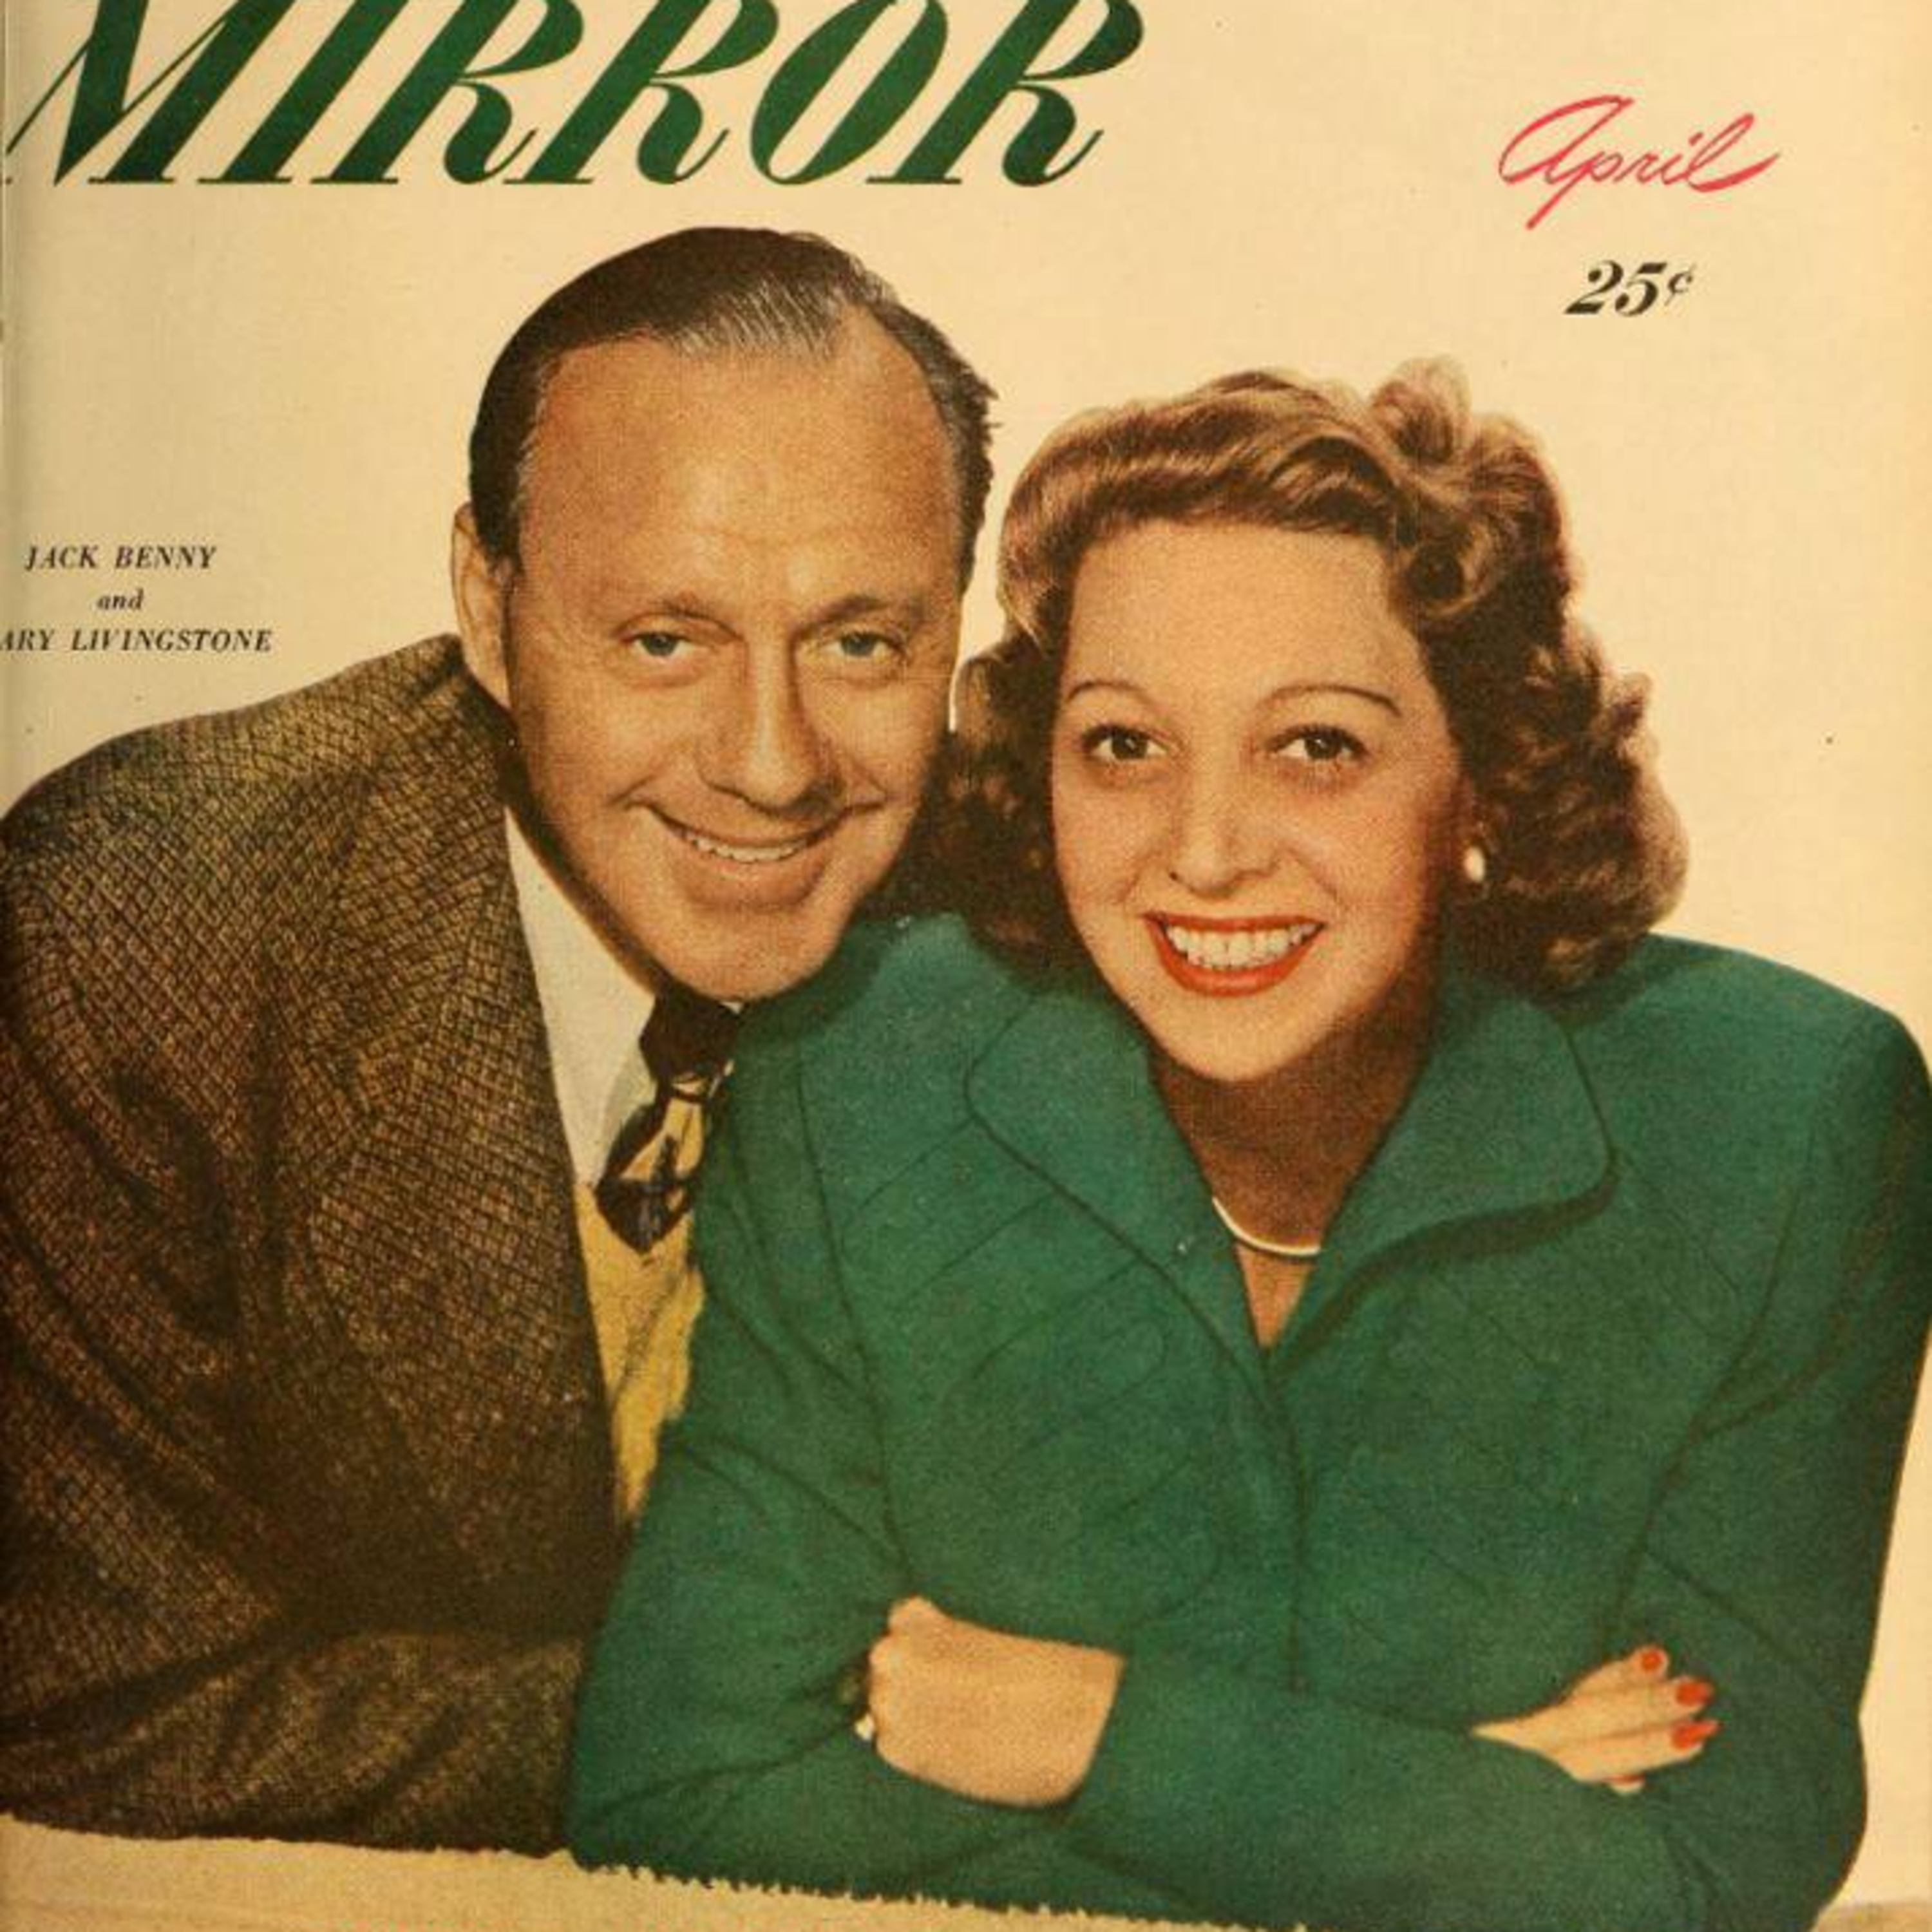 Jack Benny Easter Show Podcast - Easter at the Circus - Ah Wilderness